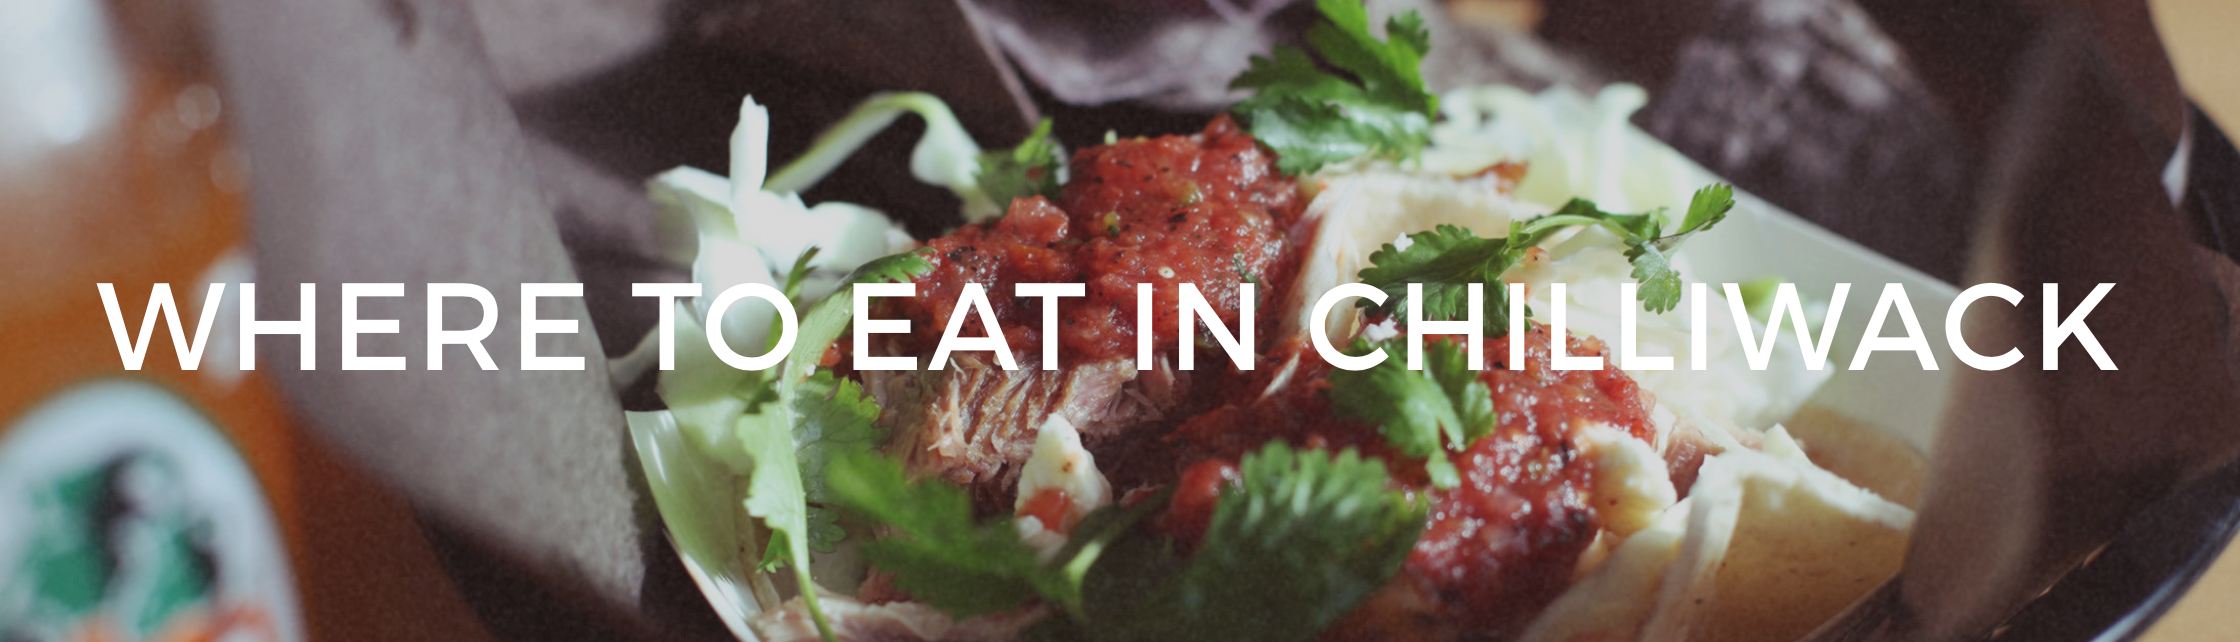 Where To Eat in Chilliwack - Best Places to Eat in Chilliwack